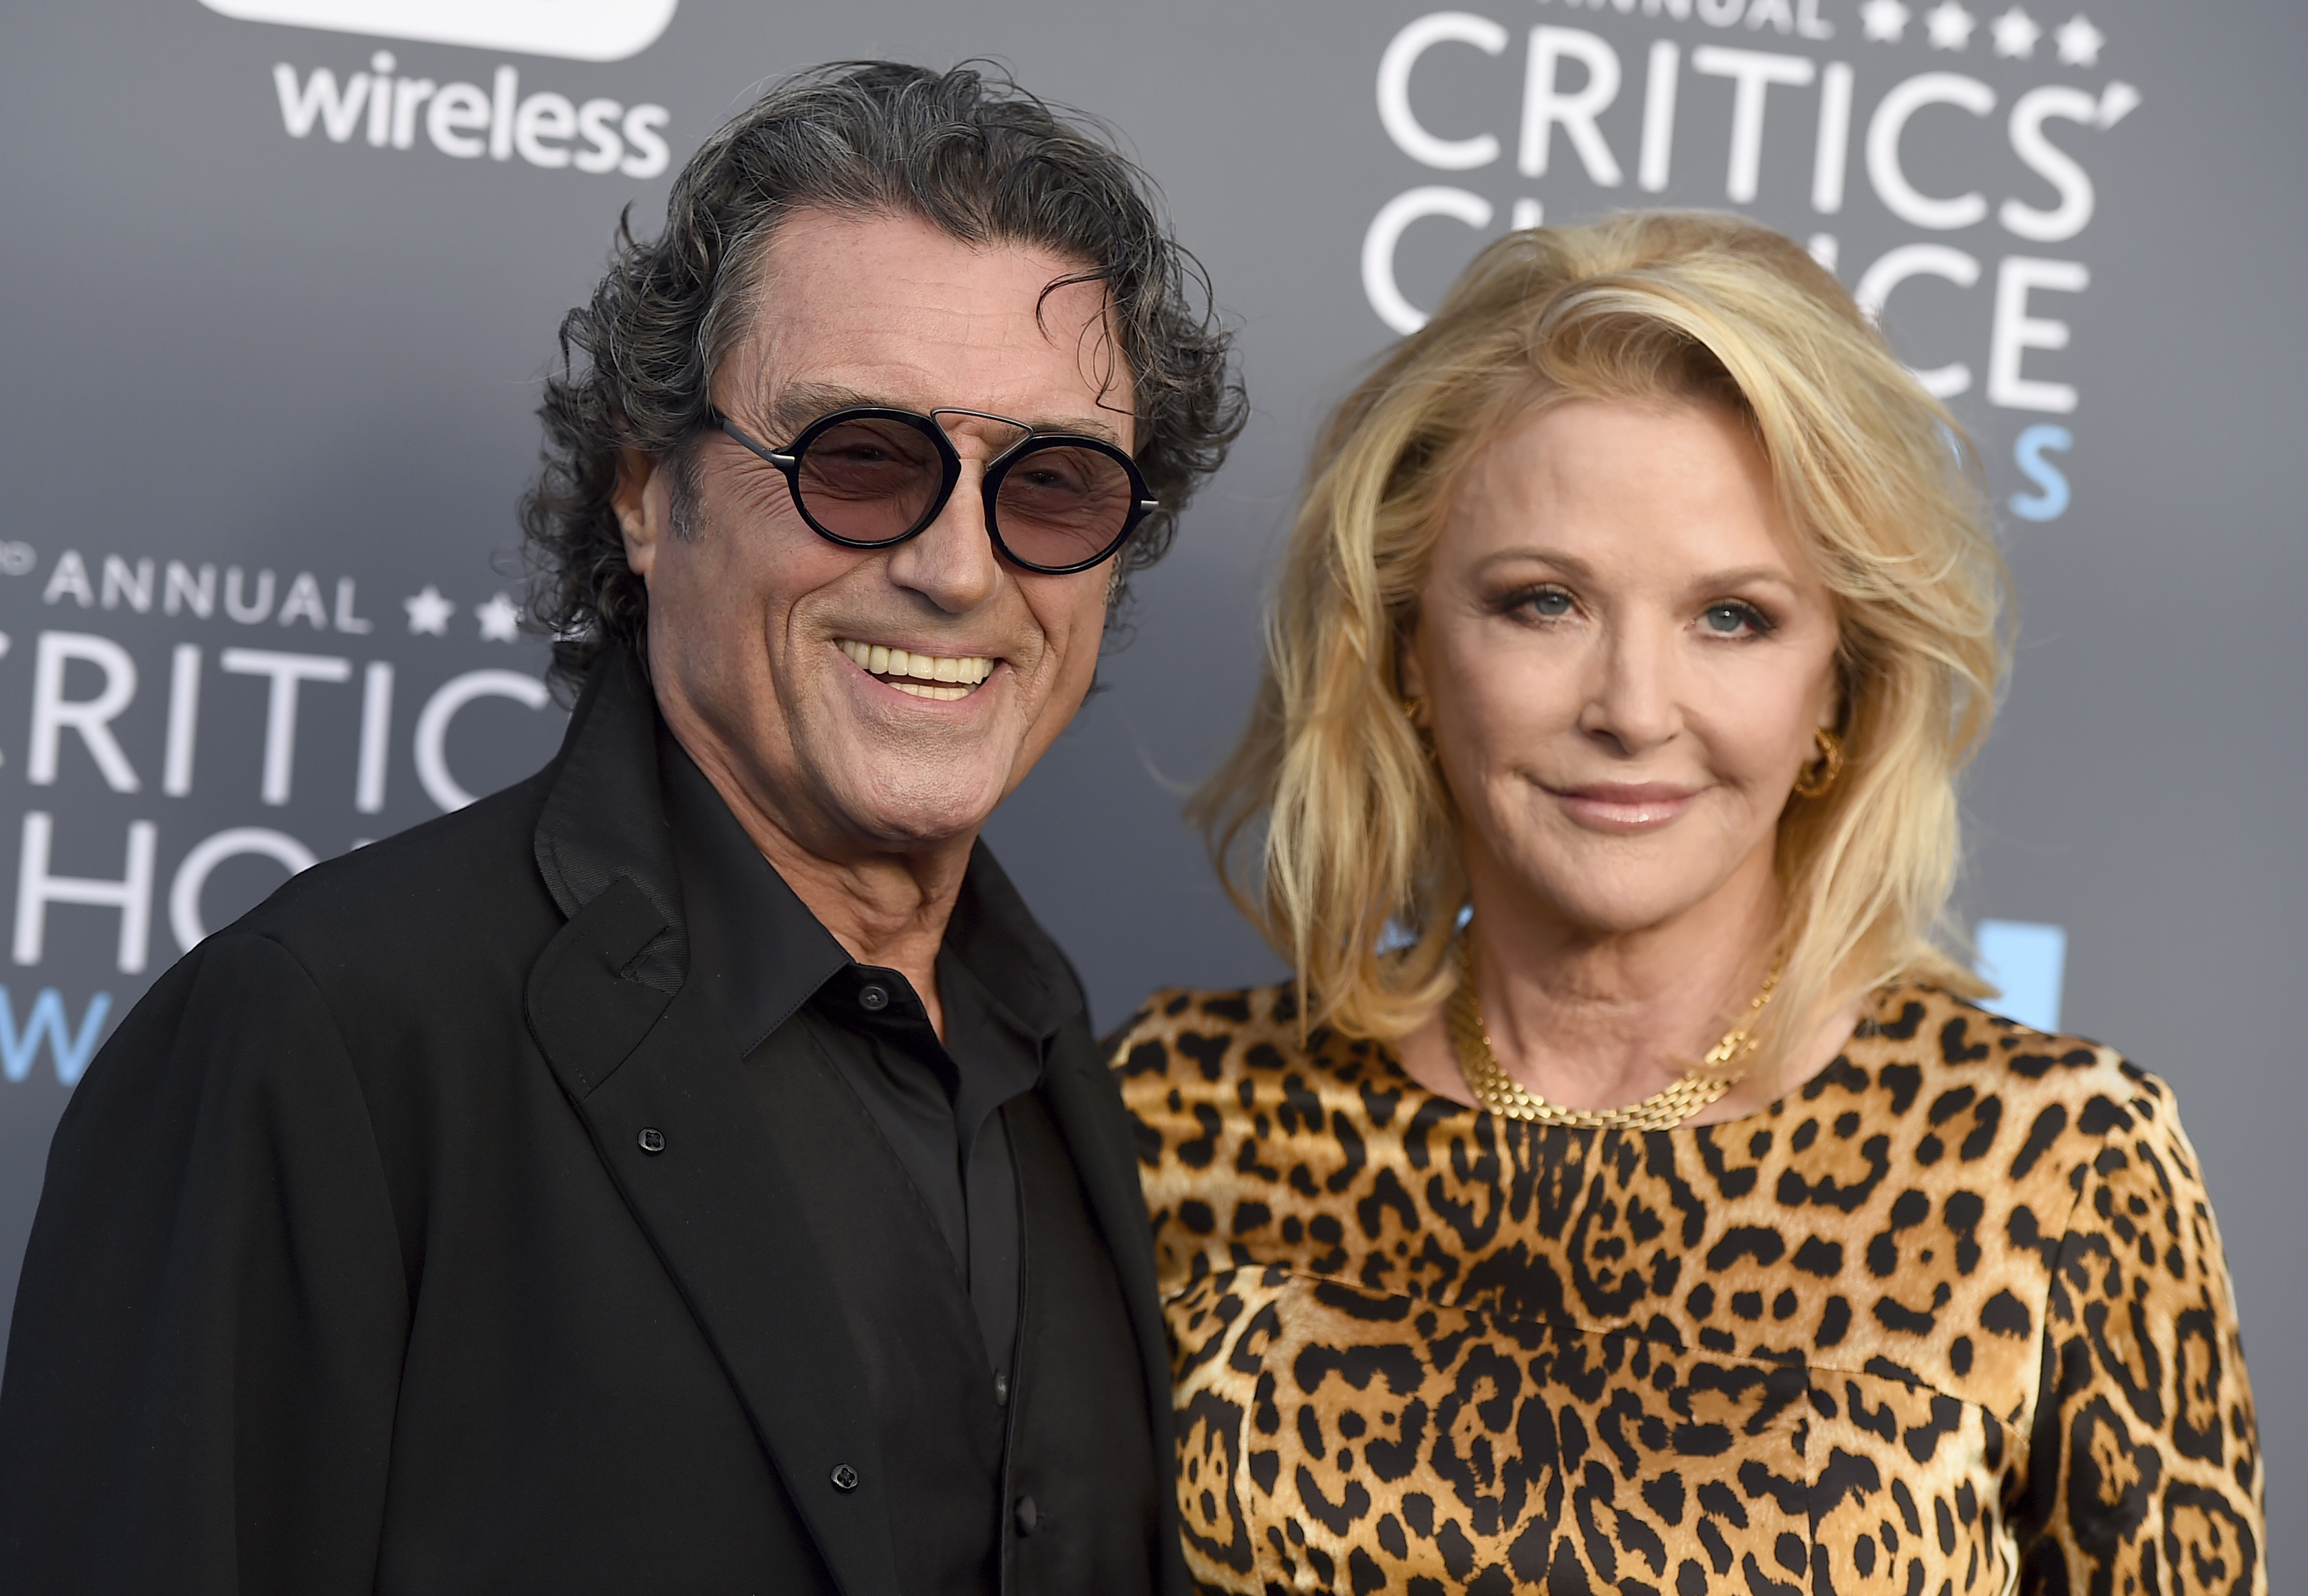 <div class='meta'><div class='origin-logo' data-origin='AP'></div><span class='caption-text' data-credit='Jordan Strauss/Invision/AP'>Ian McShane, left, and Gwen Humble arrive at the 23rd annual Critics' Choice Awards at the Barker Hangar on Thursday, Jan. 11, 2018, in Santa Monica, Calif.</span></div>